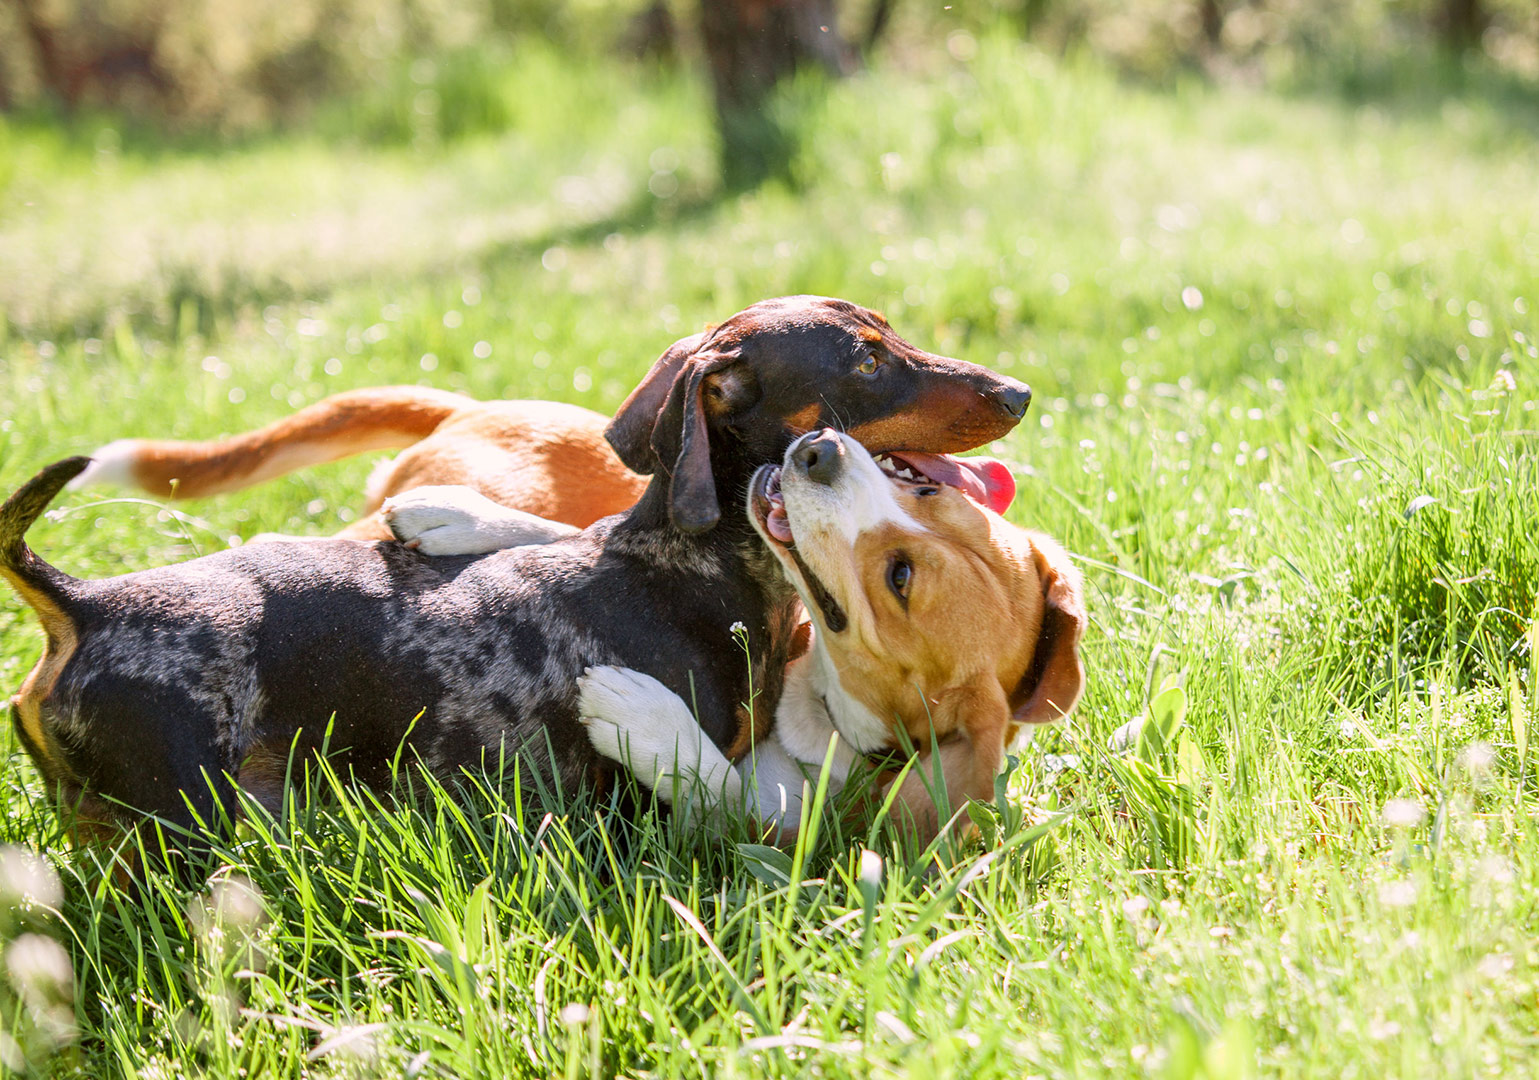 dachshund and beagle dogs playing together